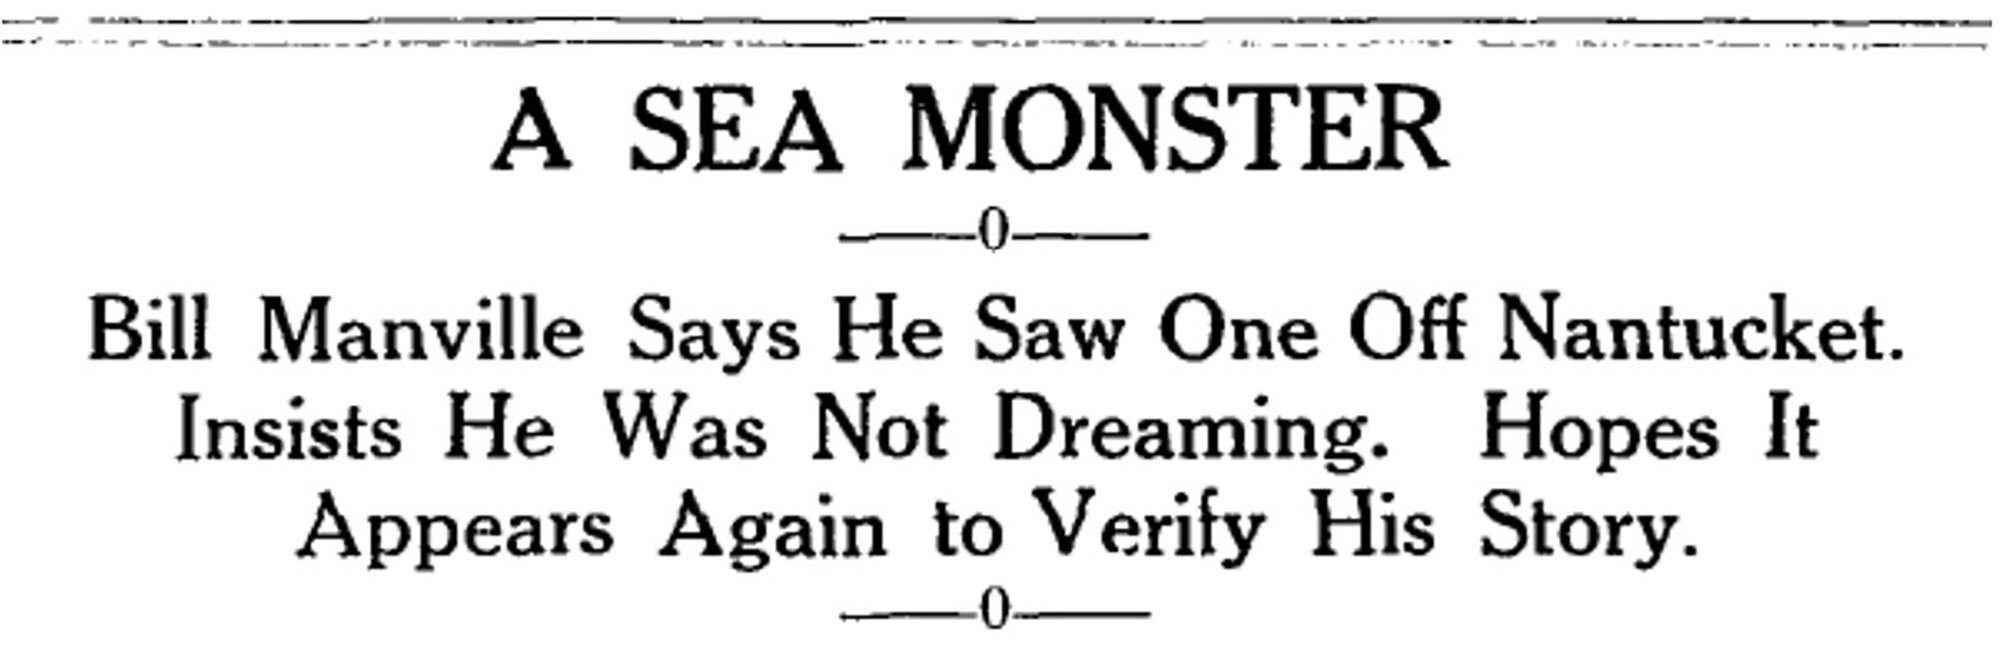 Sea-MonsterHeadline_Manville_Headline_NantucketInquirerMirror.jpg